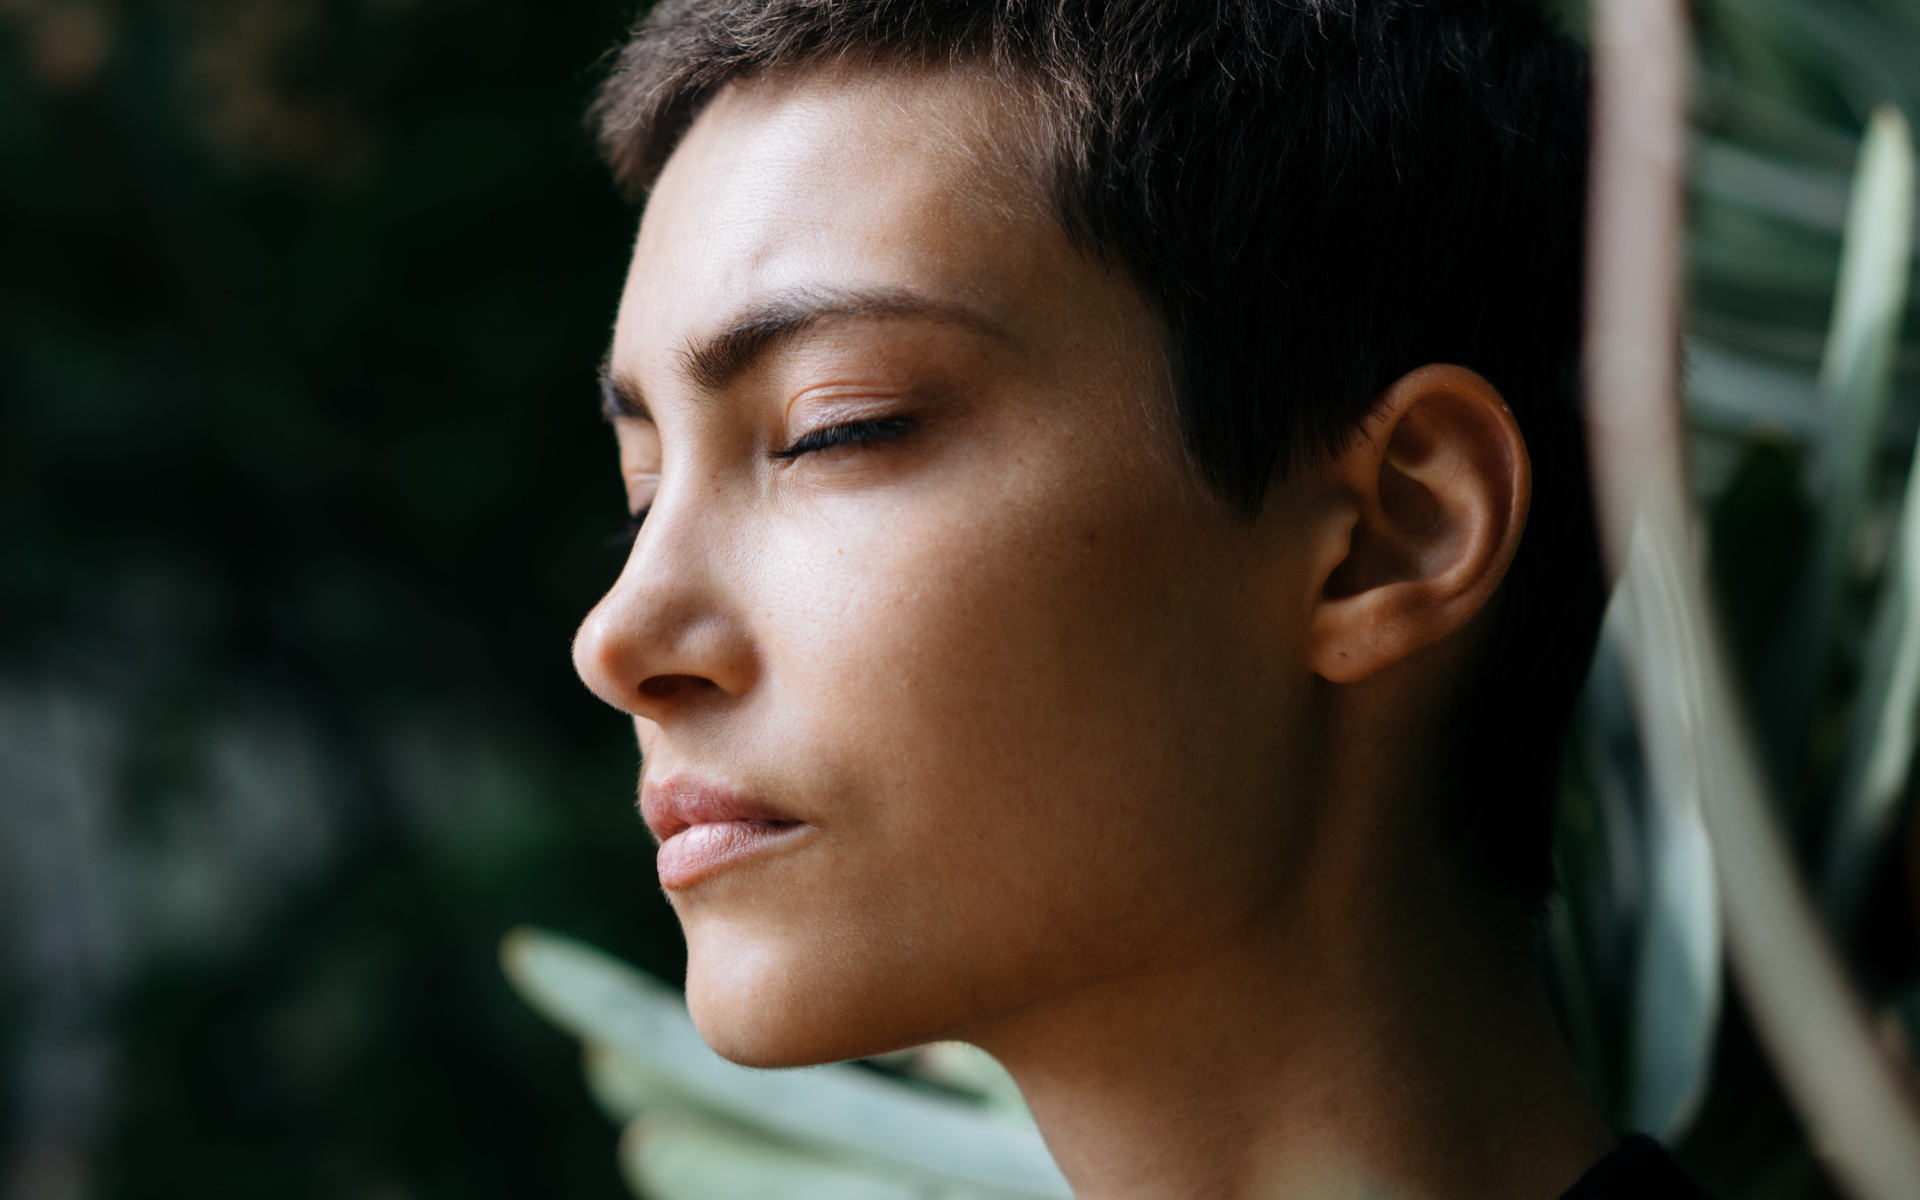 Woman In Front Of Green Tree With Her Eyes Closed In Deep Thought